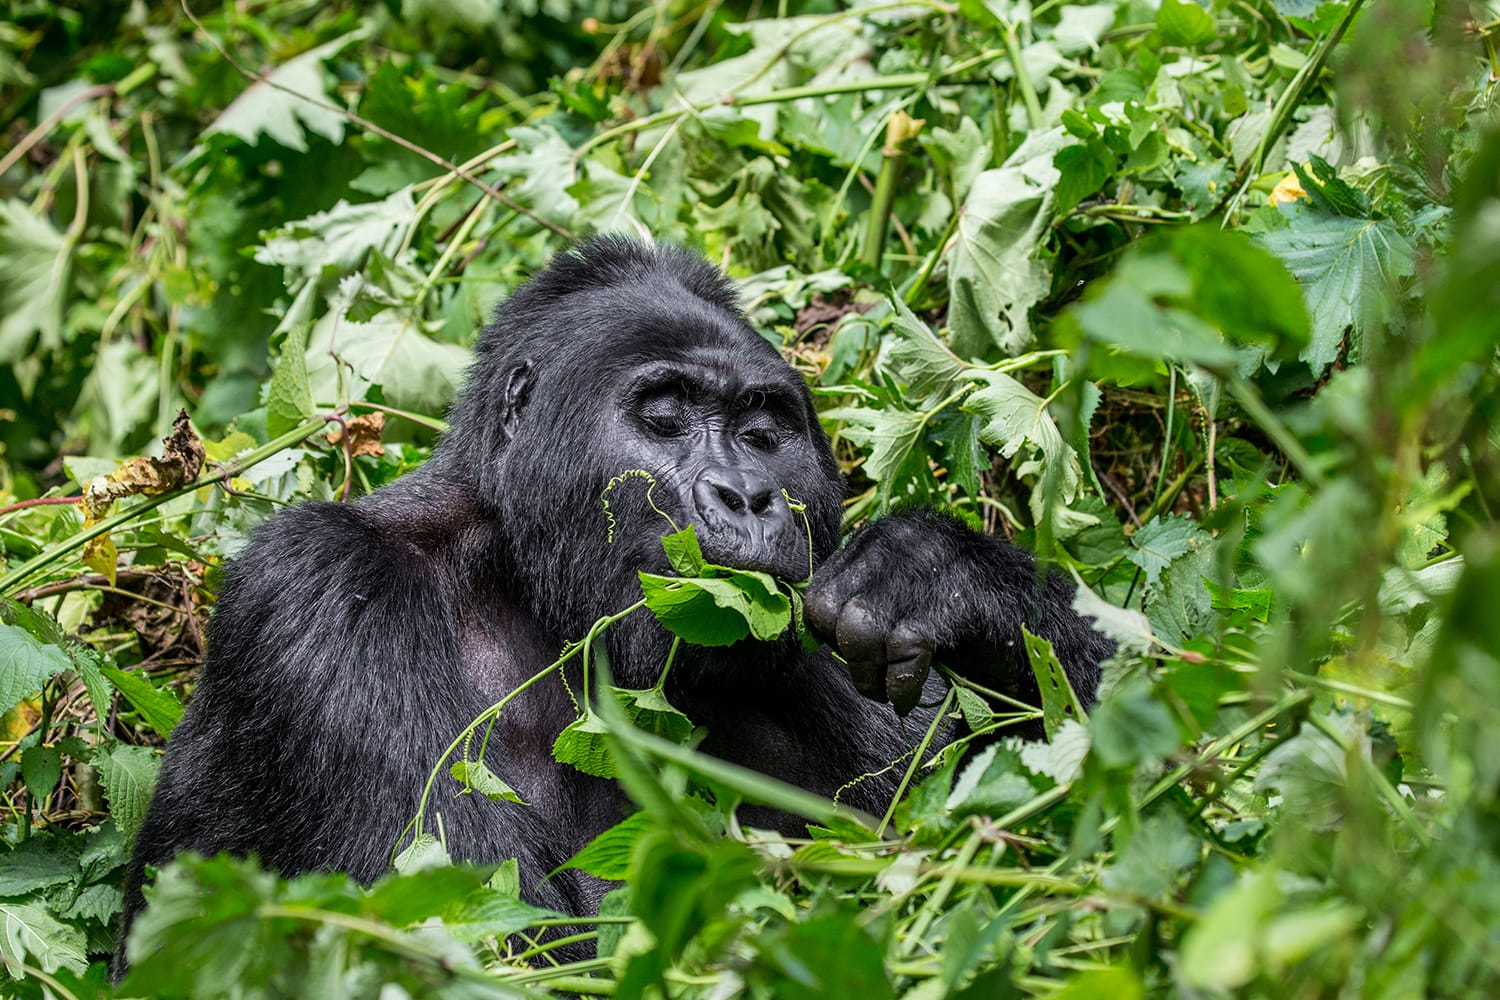 Mountain gorilla eating plants. Uganda. Bwindi Impenetrable Forest National Park